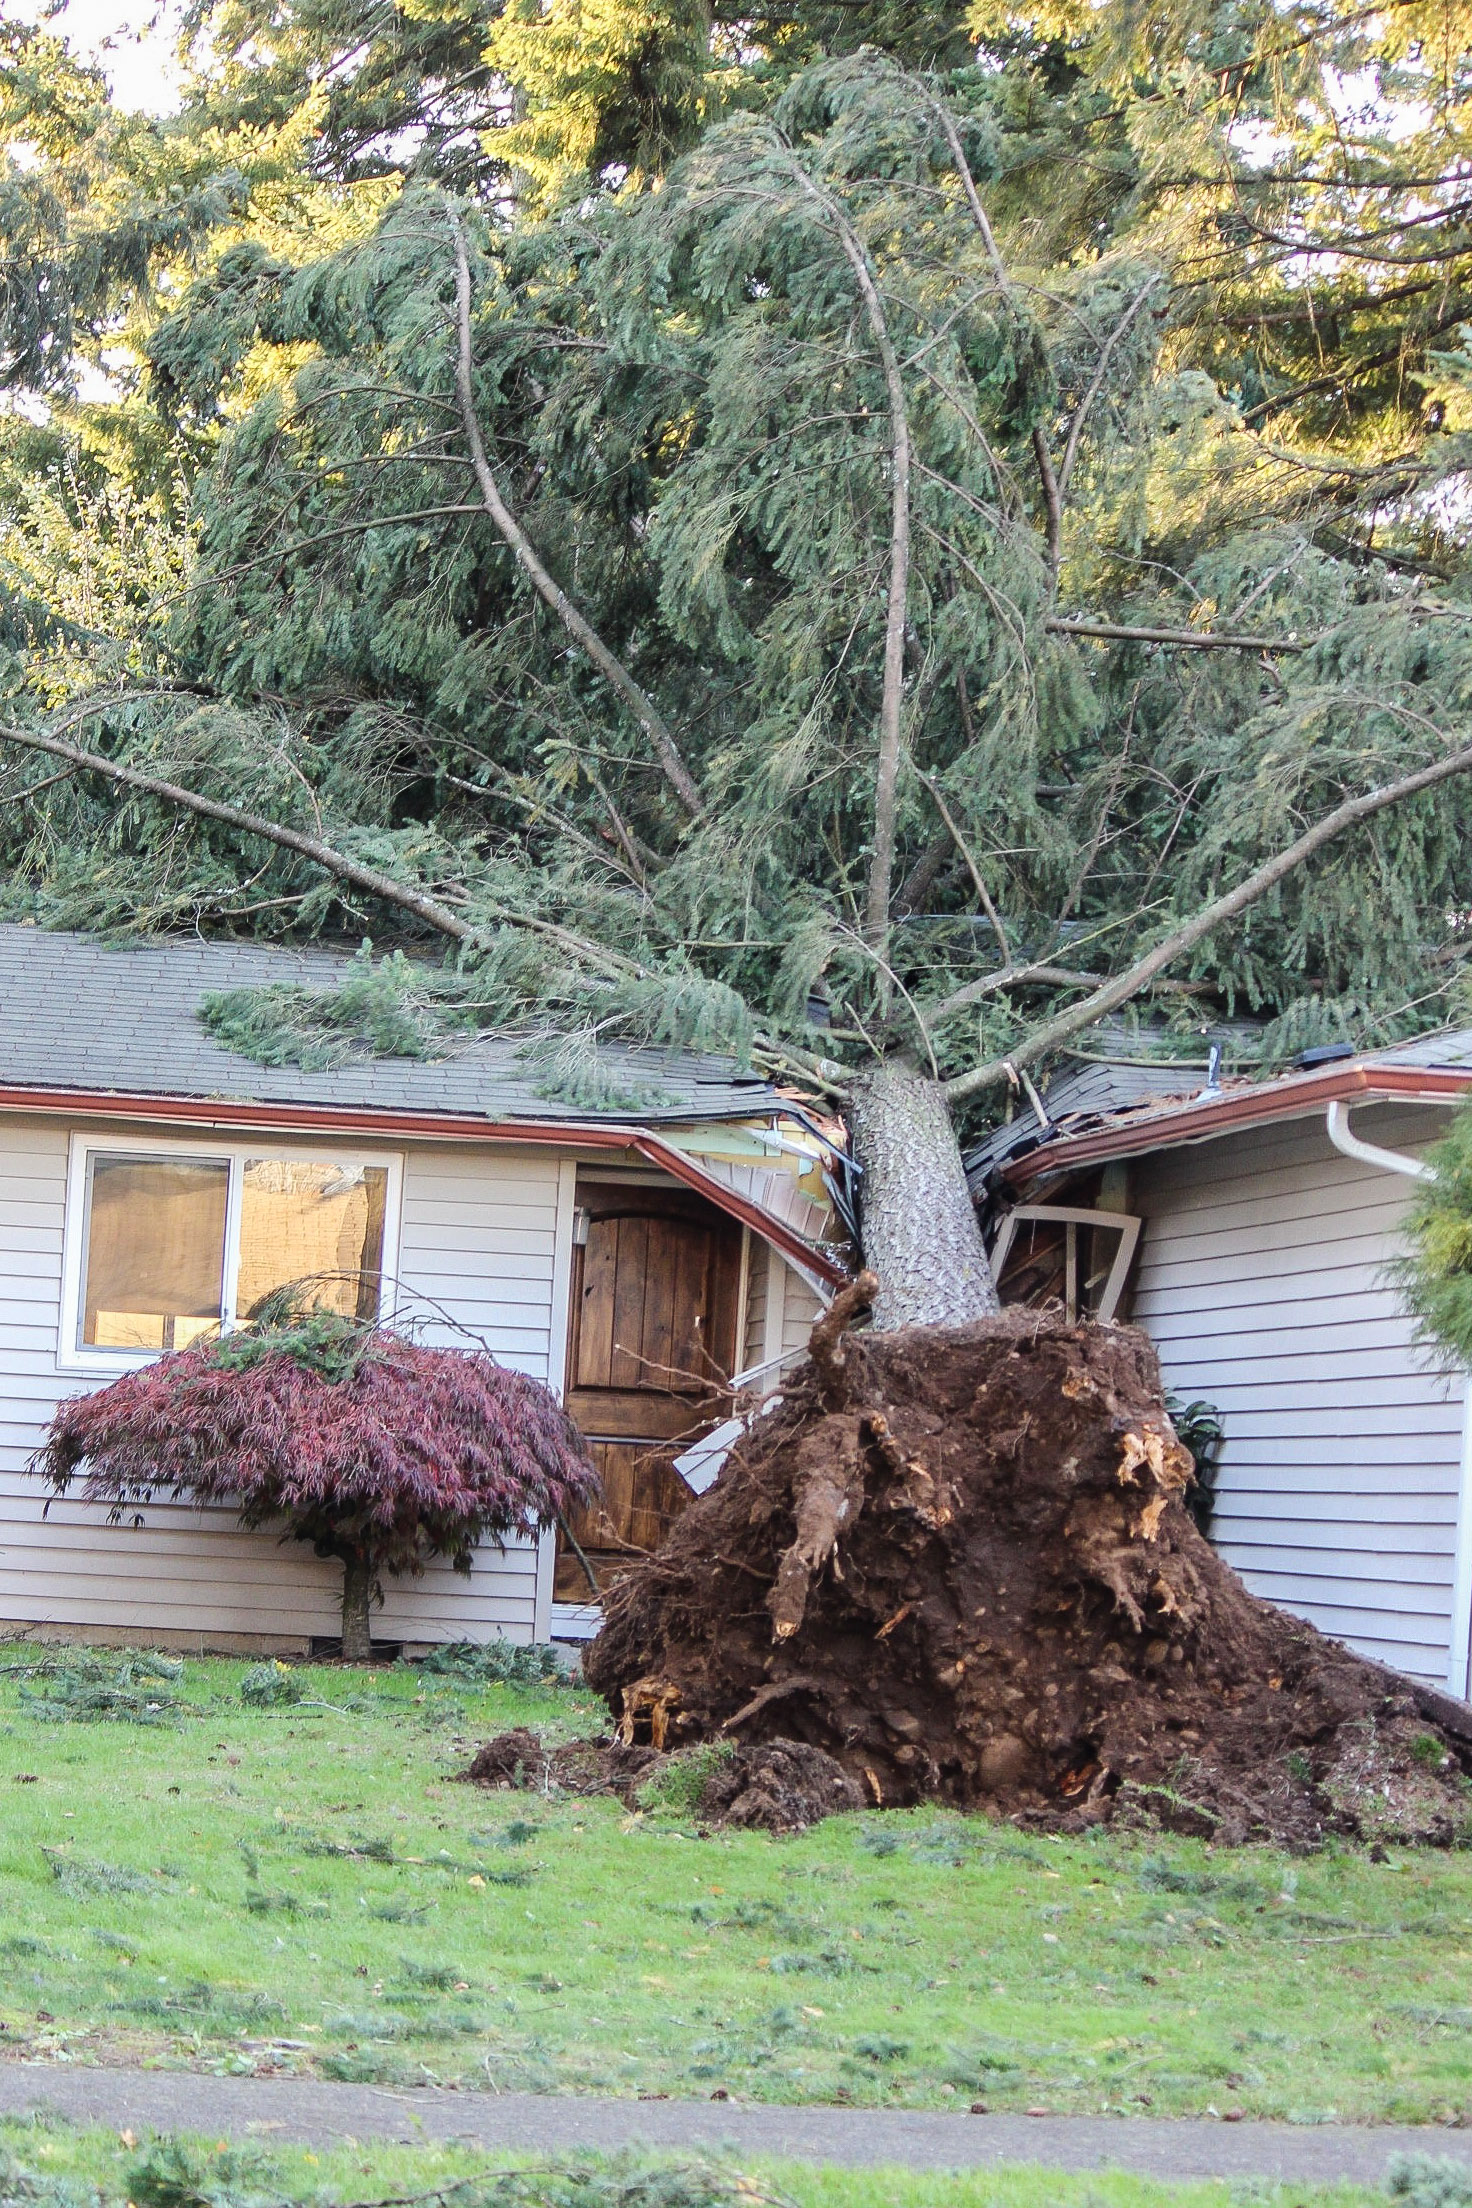 Ouch! This tree fell within three blocks of our home. Repairs are already underway.